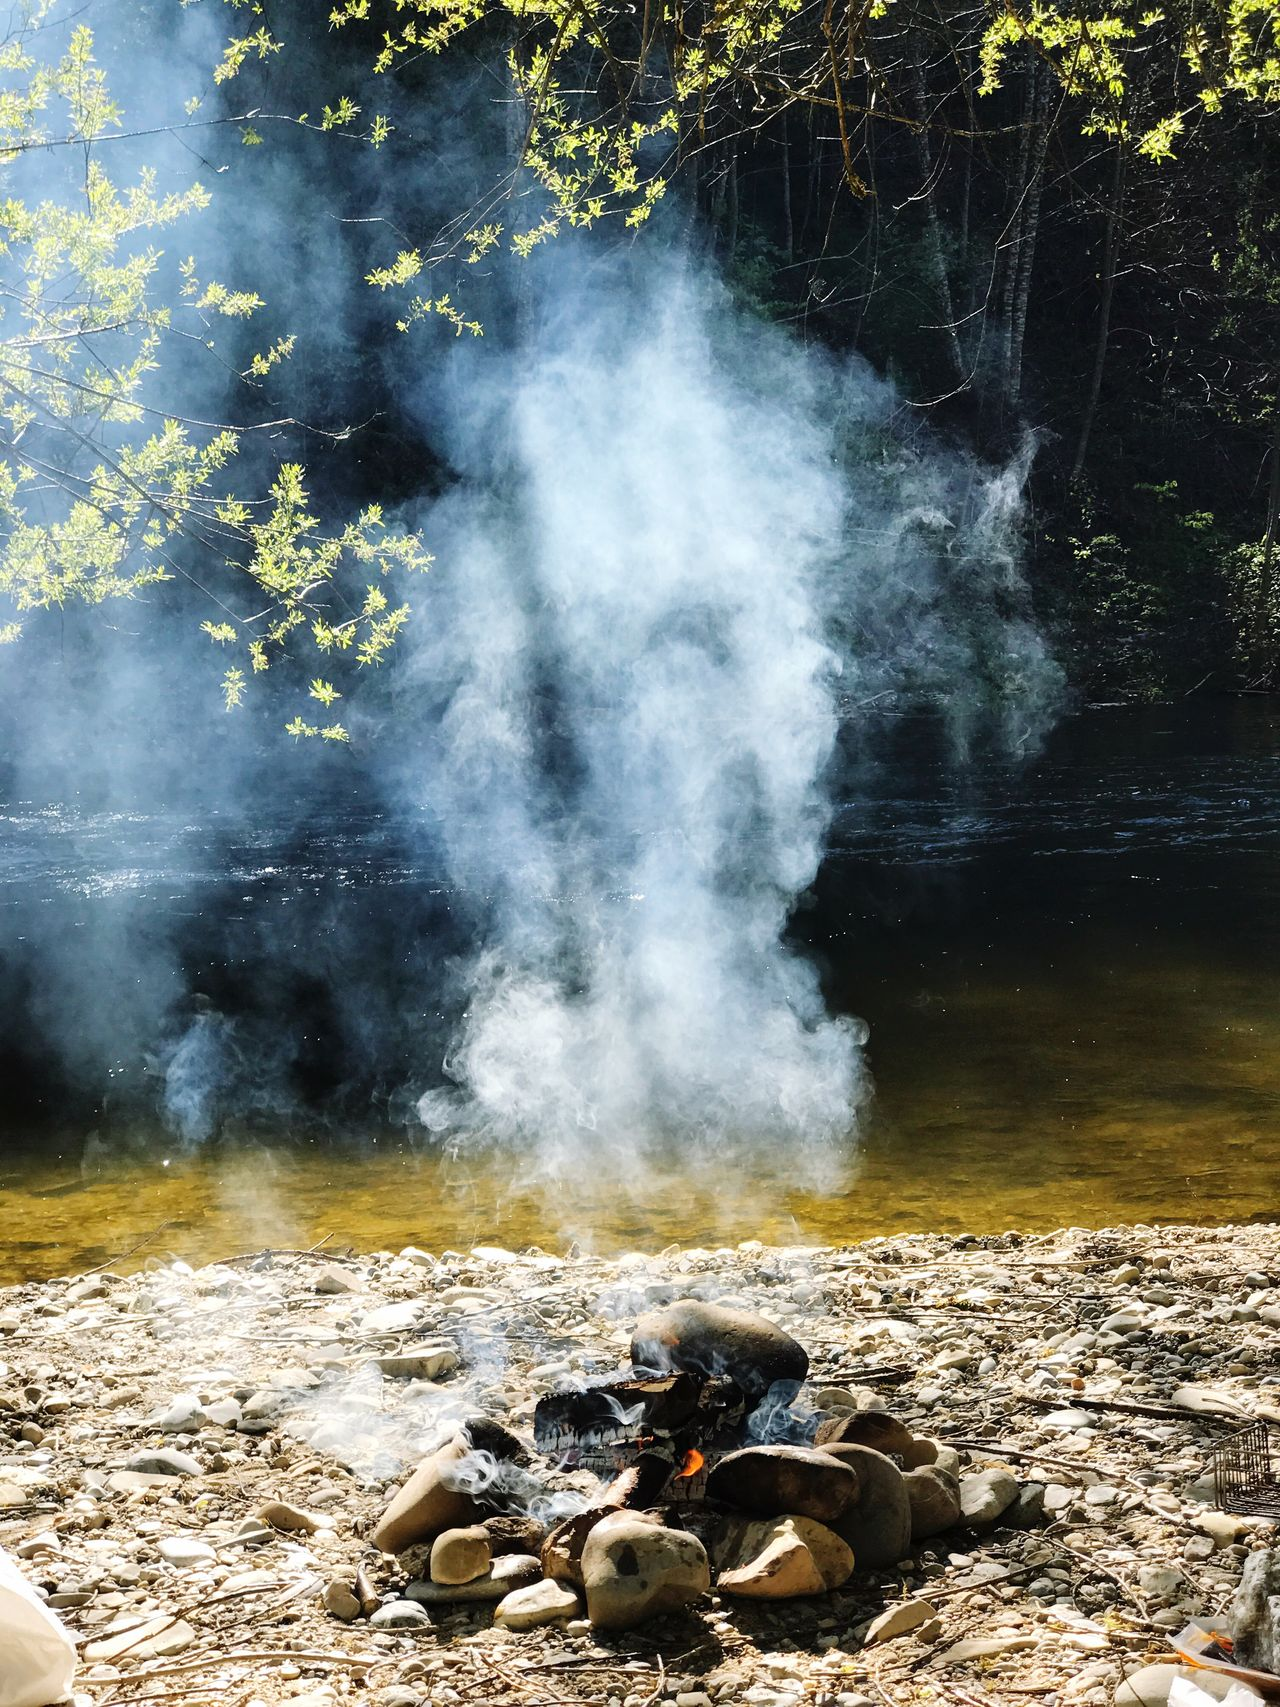 Smoke - Physical Structure Nature Steam Hot Spring Heat - Temperature Day Outdoors Water Beauty In Nature No People